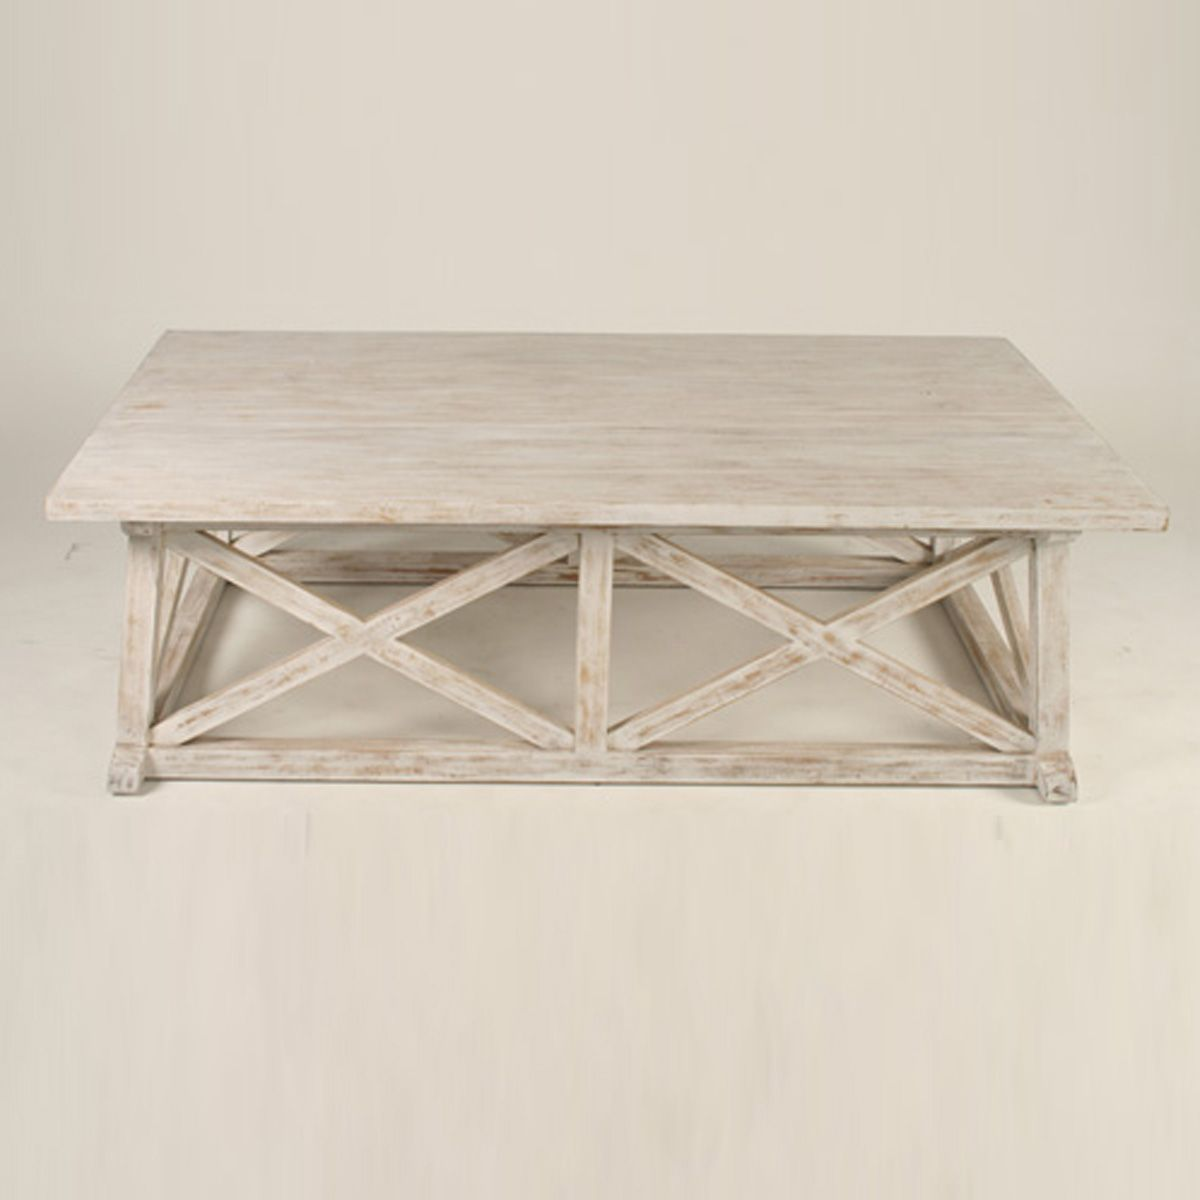 A new collection of white washed furniture has arrived at our boat house White wood coffee table